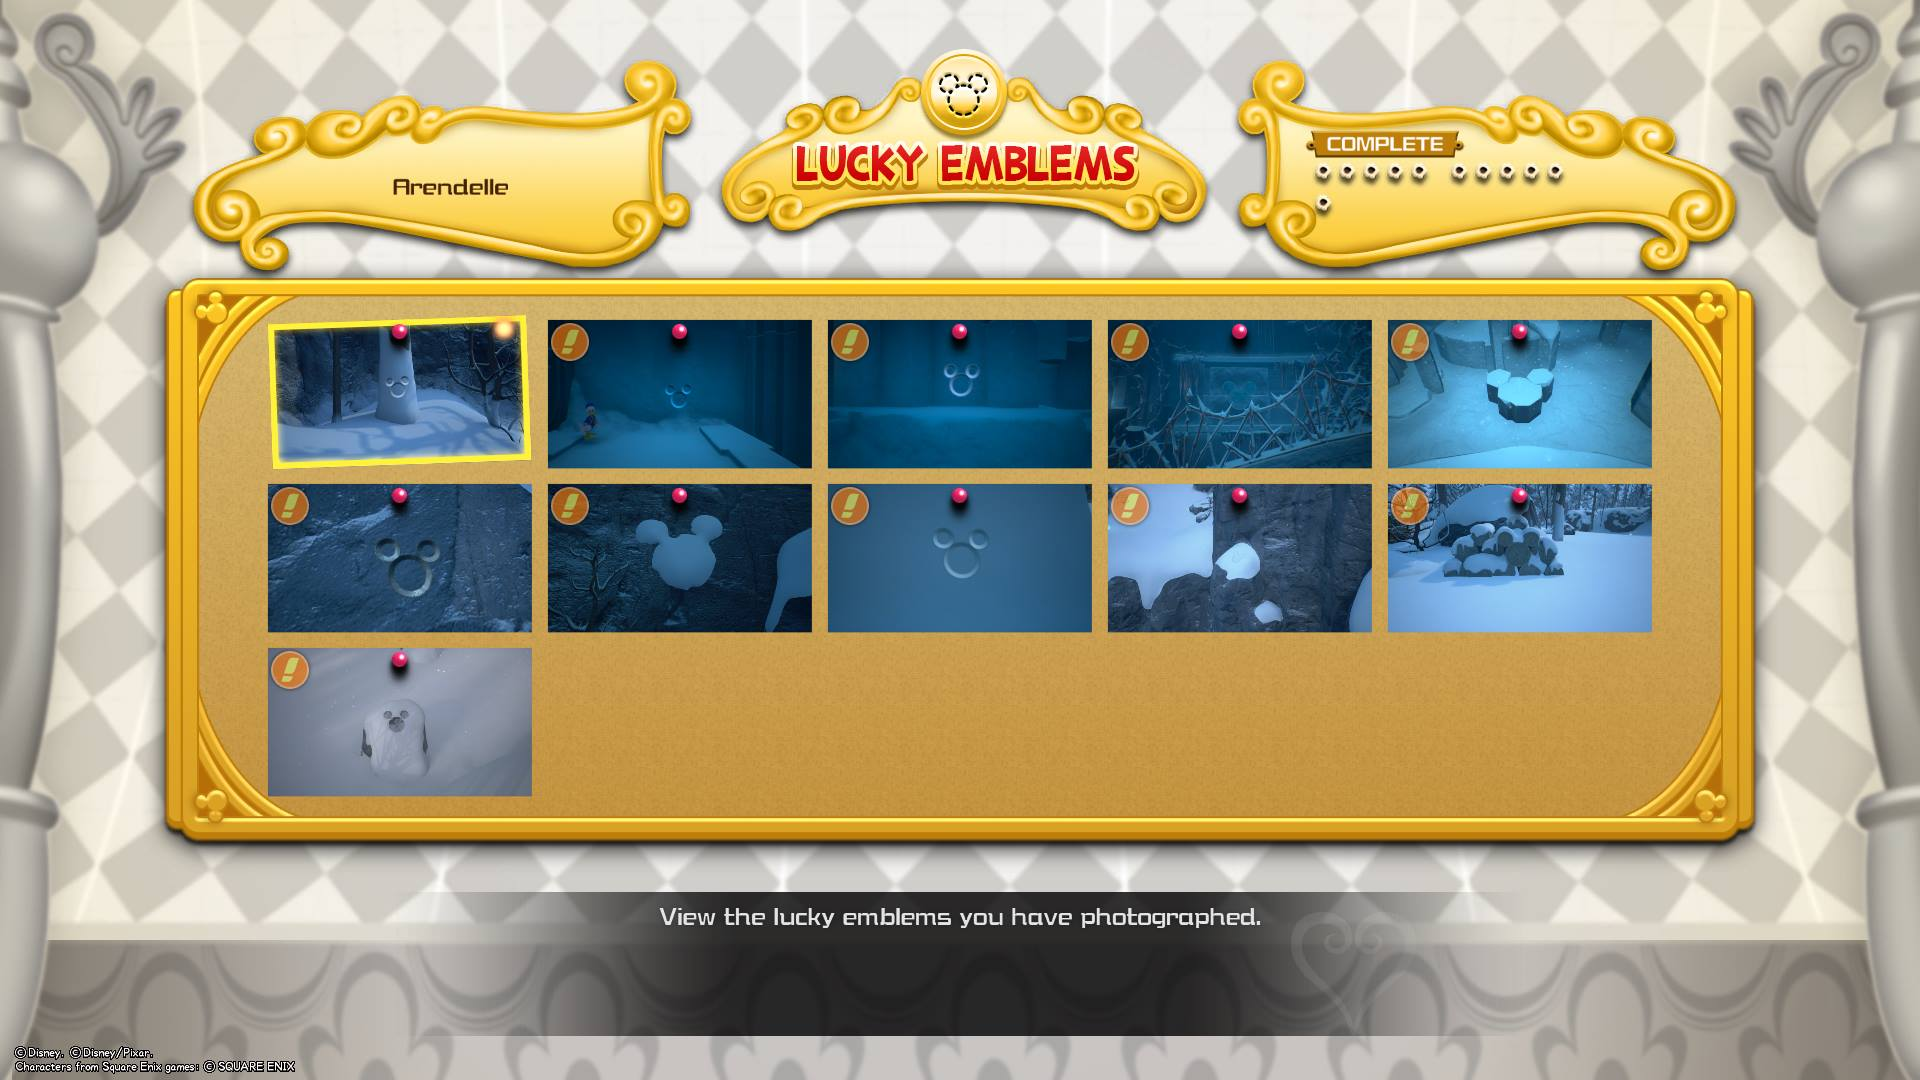 There are 11 Lucky Emblems in the Arendelle world of Kingdom Hearts 3.